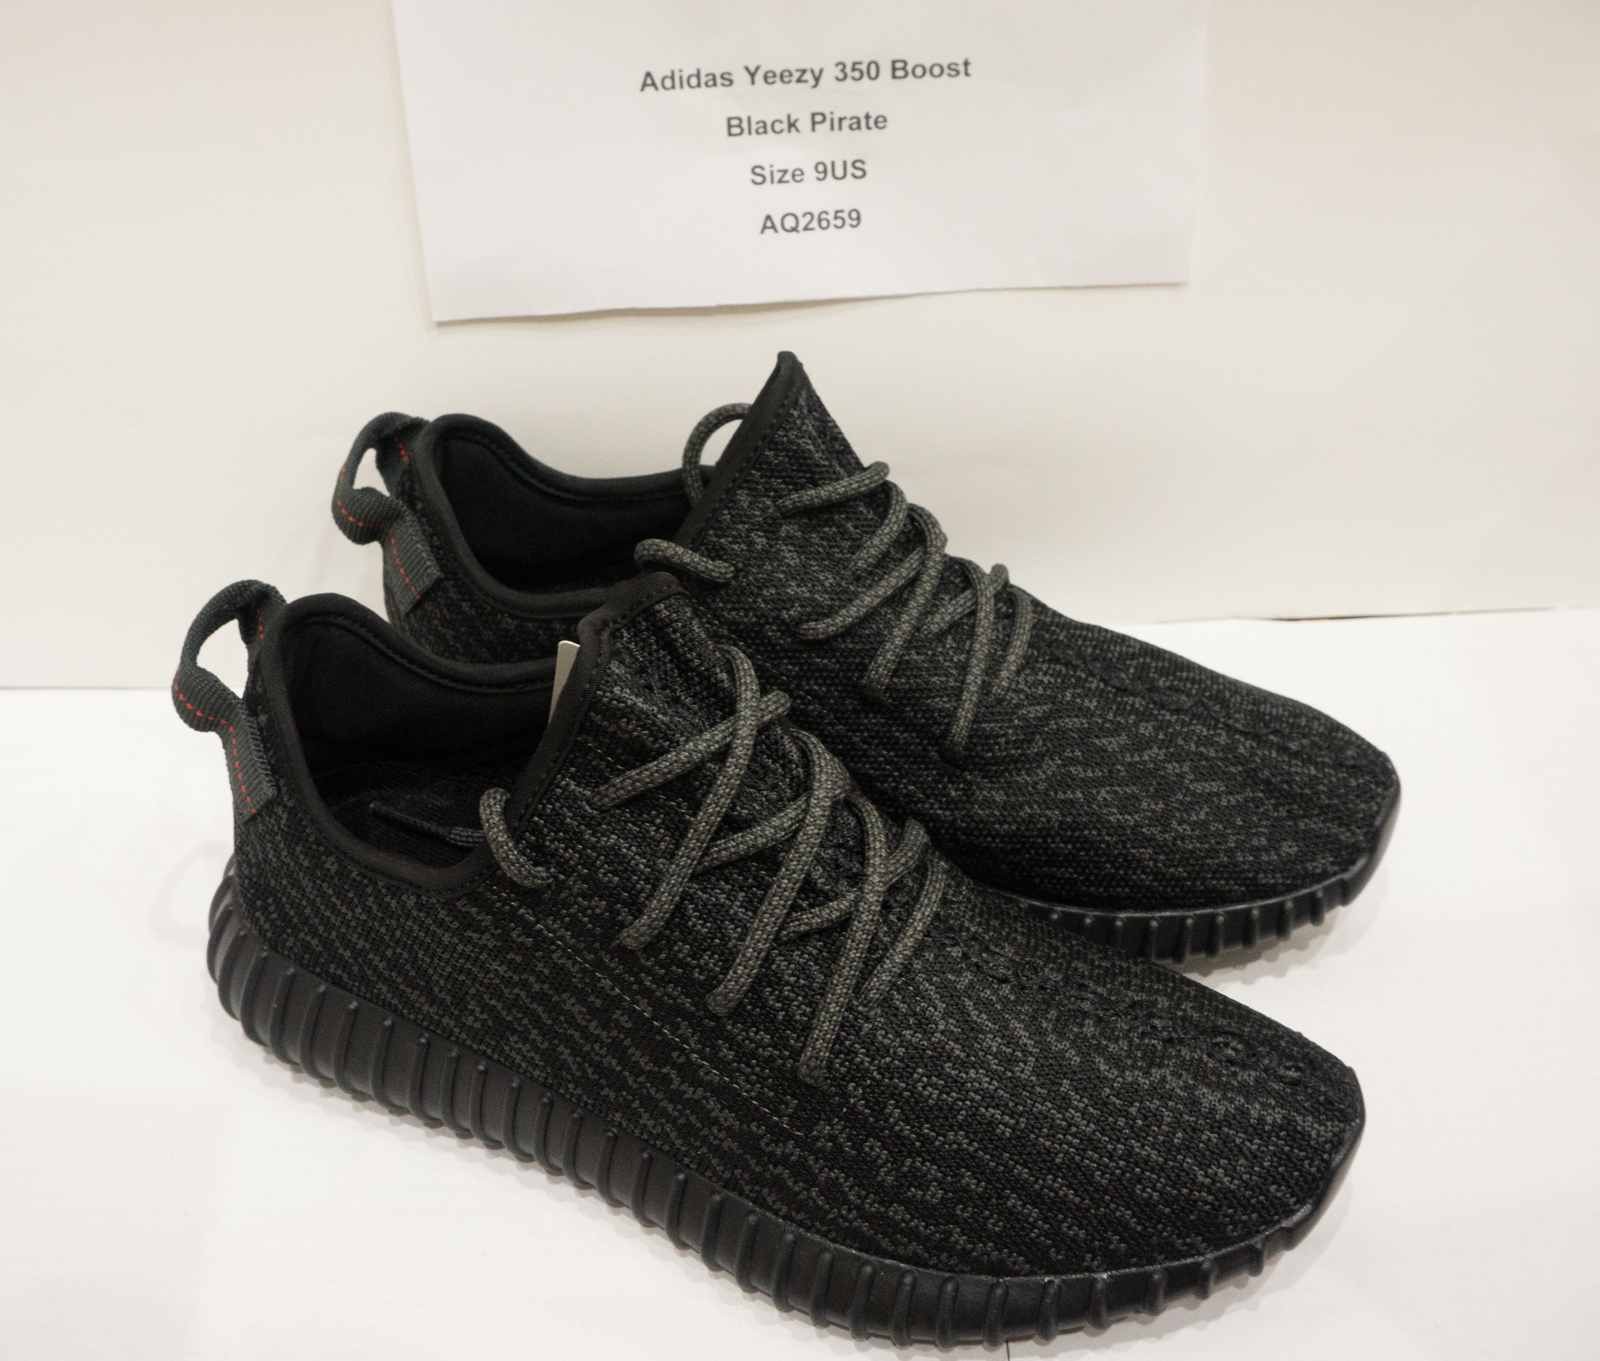 ae2741eee Adidas Yeezy 350 Boost Low Kanye West Triple Black Pirate Black AQ2659 Size  9US